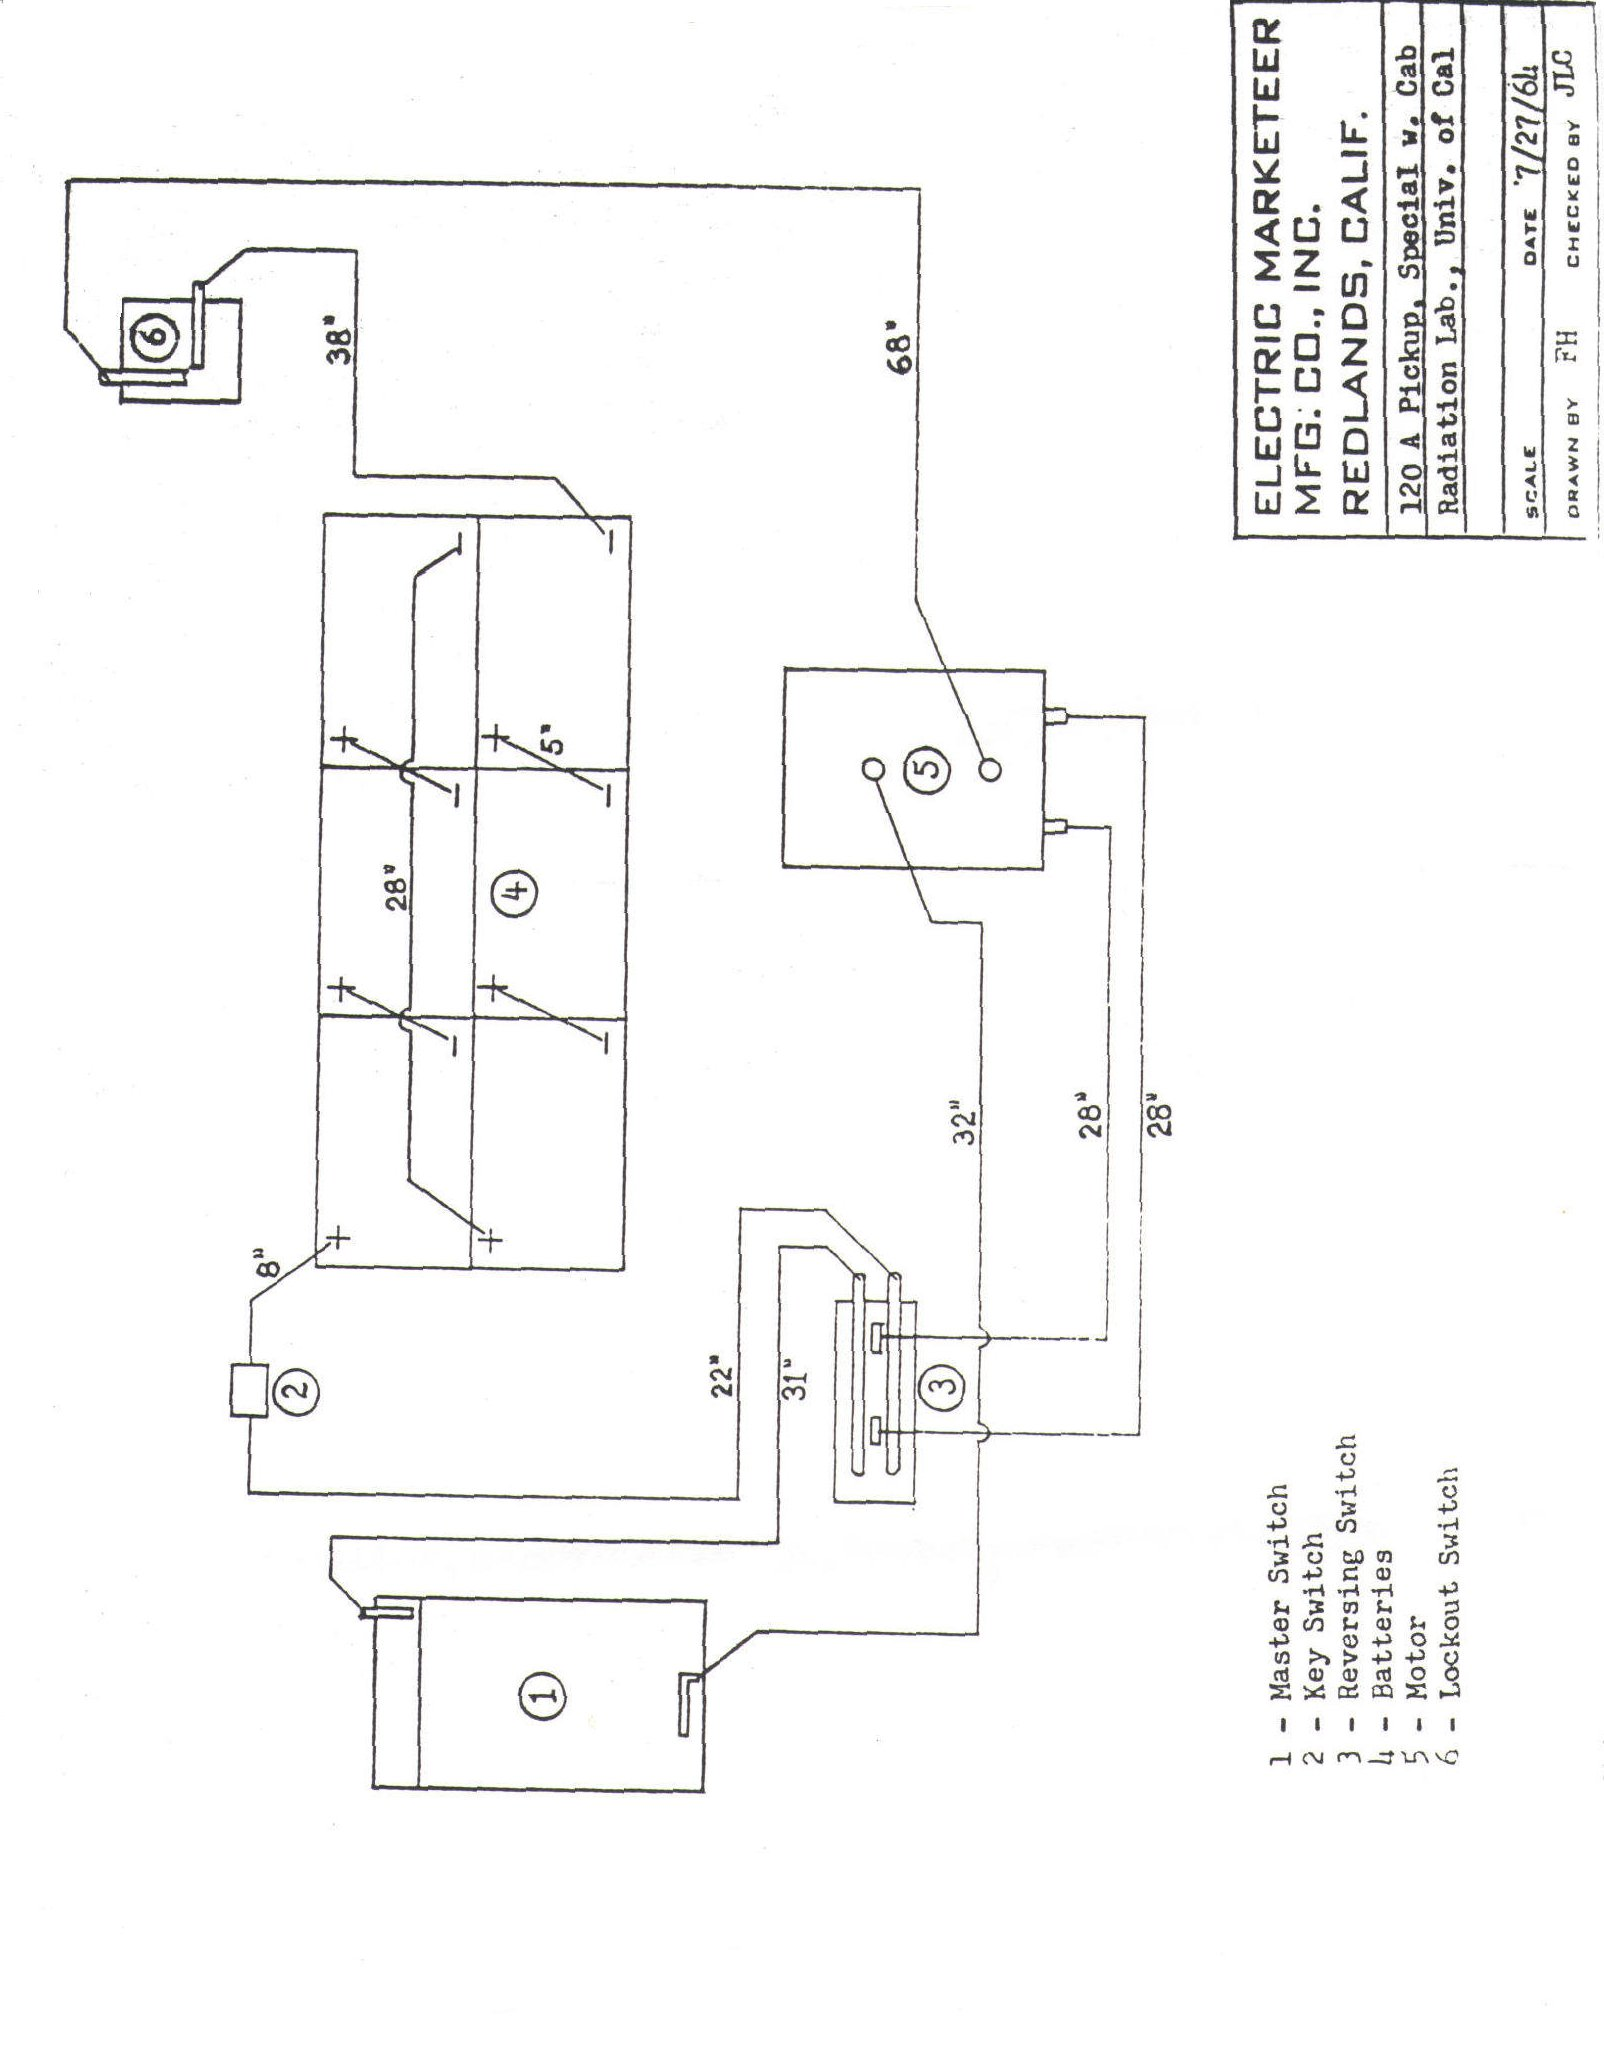 medium resolution of golf cart wiring diagram westinghouse 529 agricultural and westinghouse golf cart wiring diagram